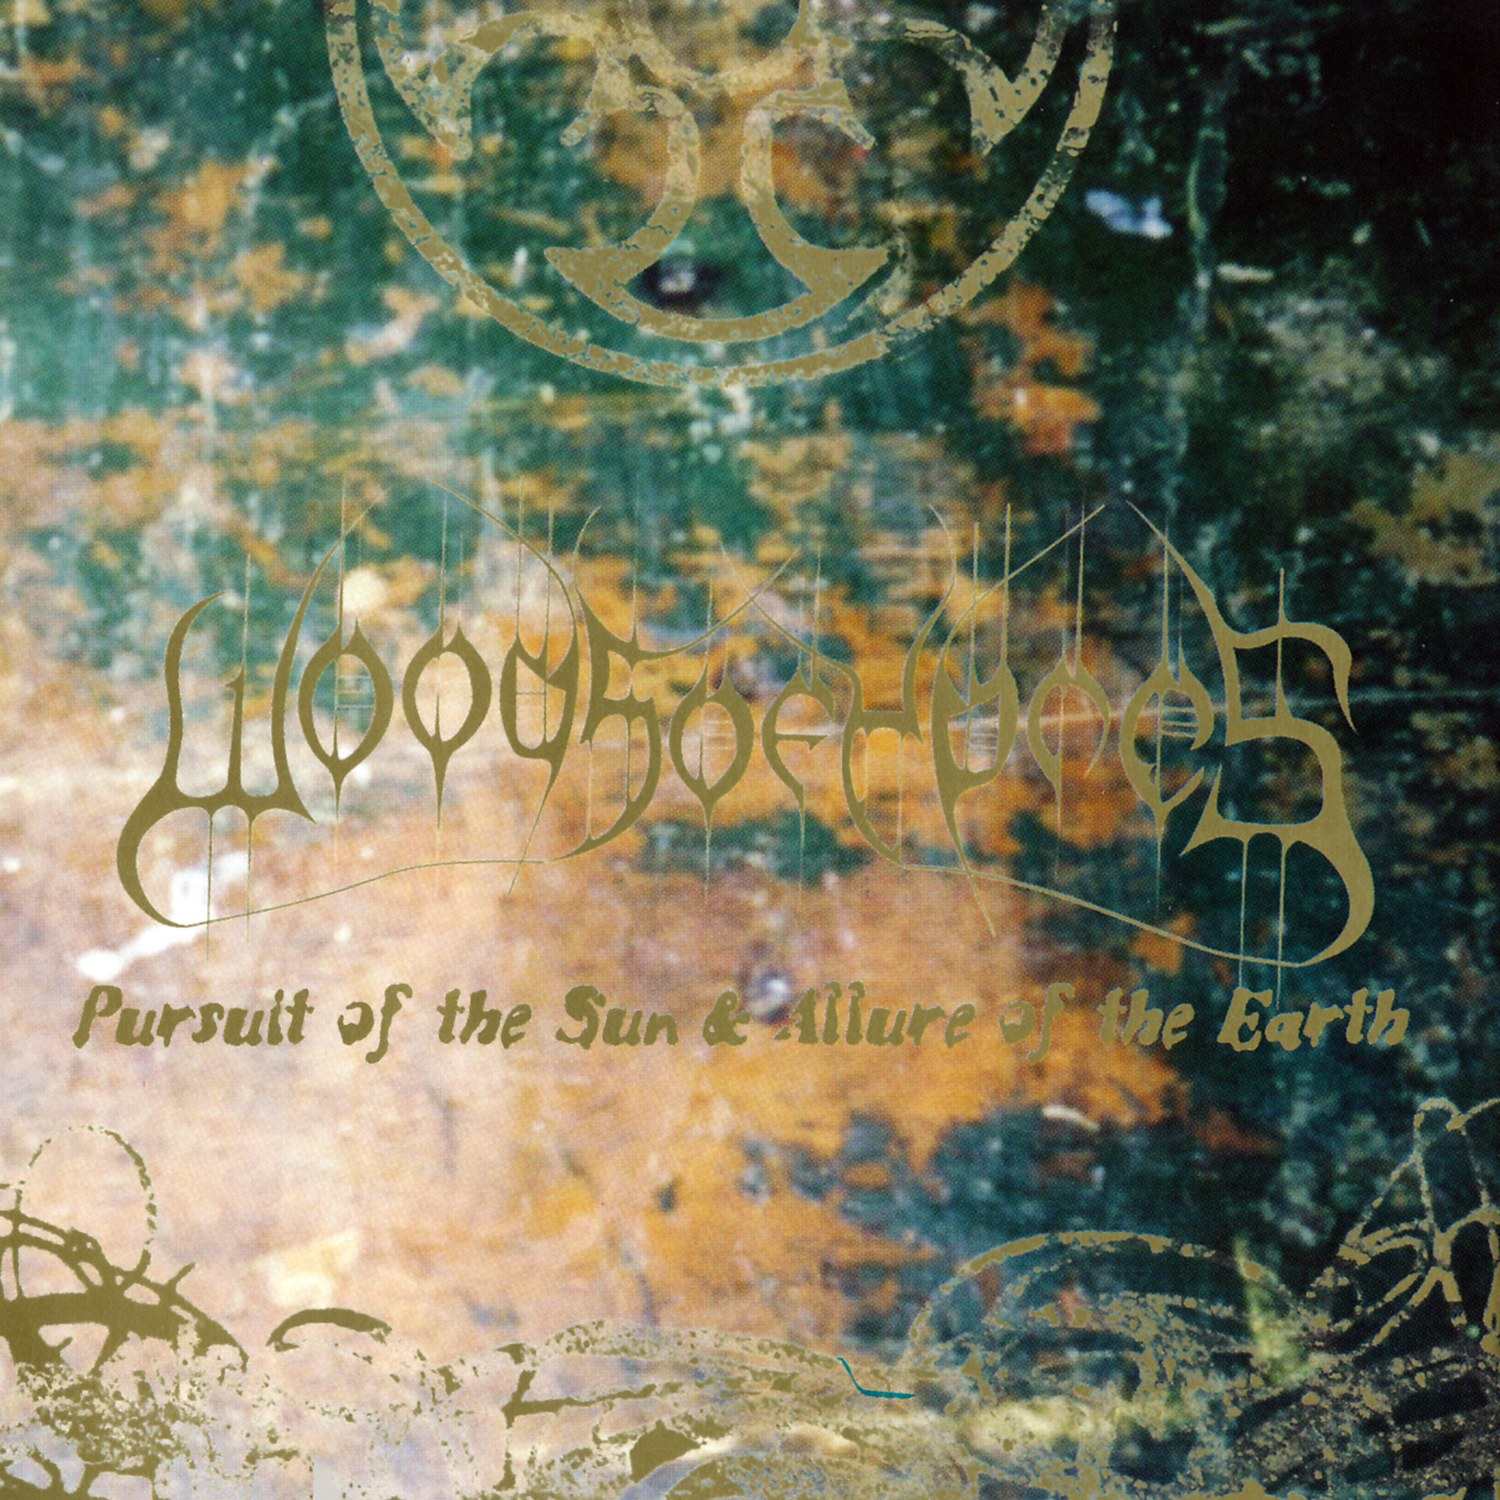 Review for Woods of Ypres - Pursuit of the Sun & Allure of the Earth